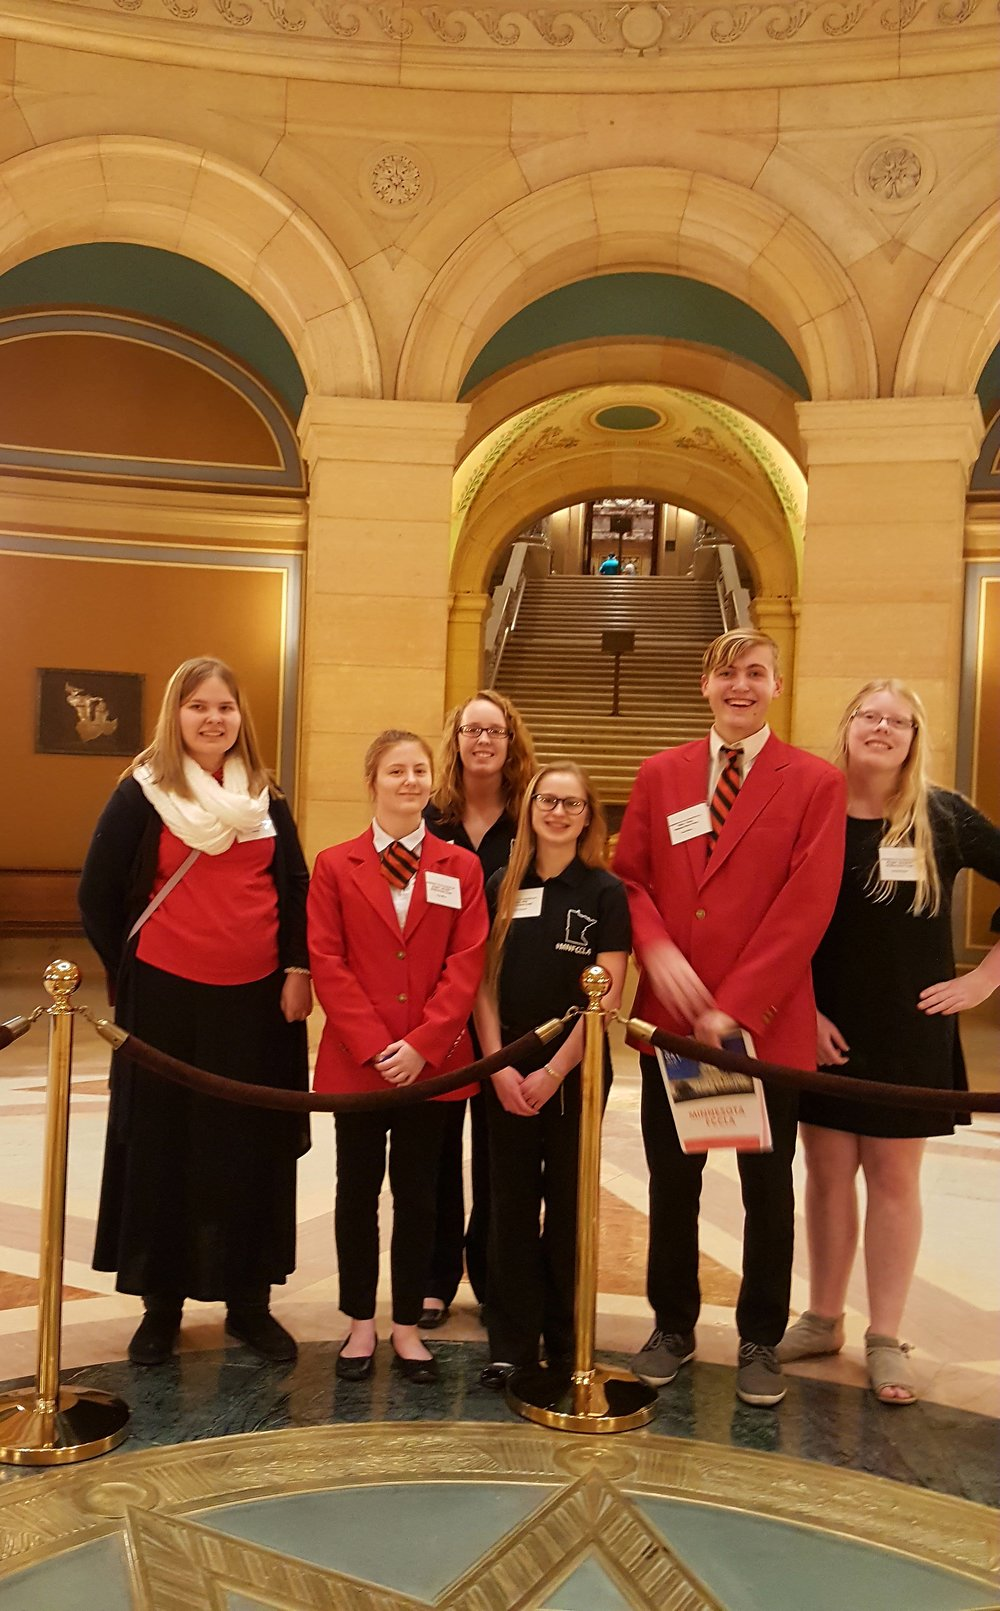 WDC FCCLA members enjoyed a fantastic day shadowing legislators at the capitol. Pictured, from left: Casey Bounds, Angela LeComte, Frannie Bakken, Emma Mehl, Elliot Doyle, Morgan Grangruth.